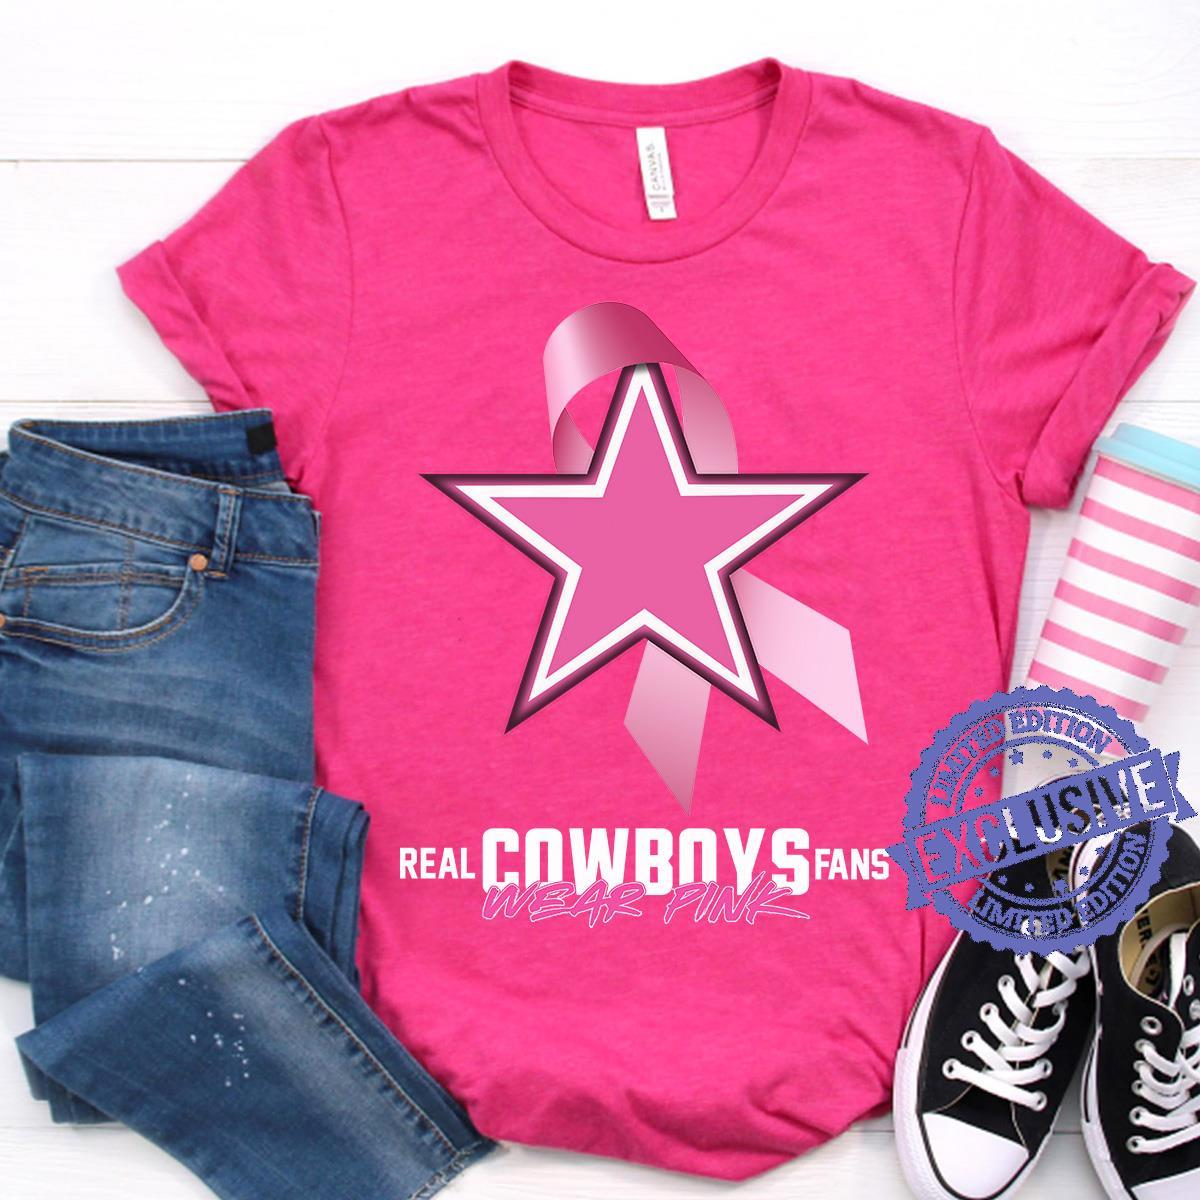 Real cowboys fans wear pink shirt